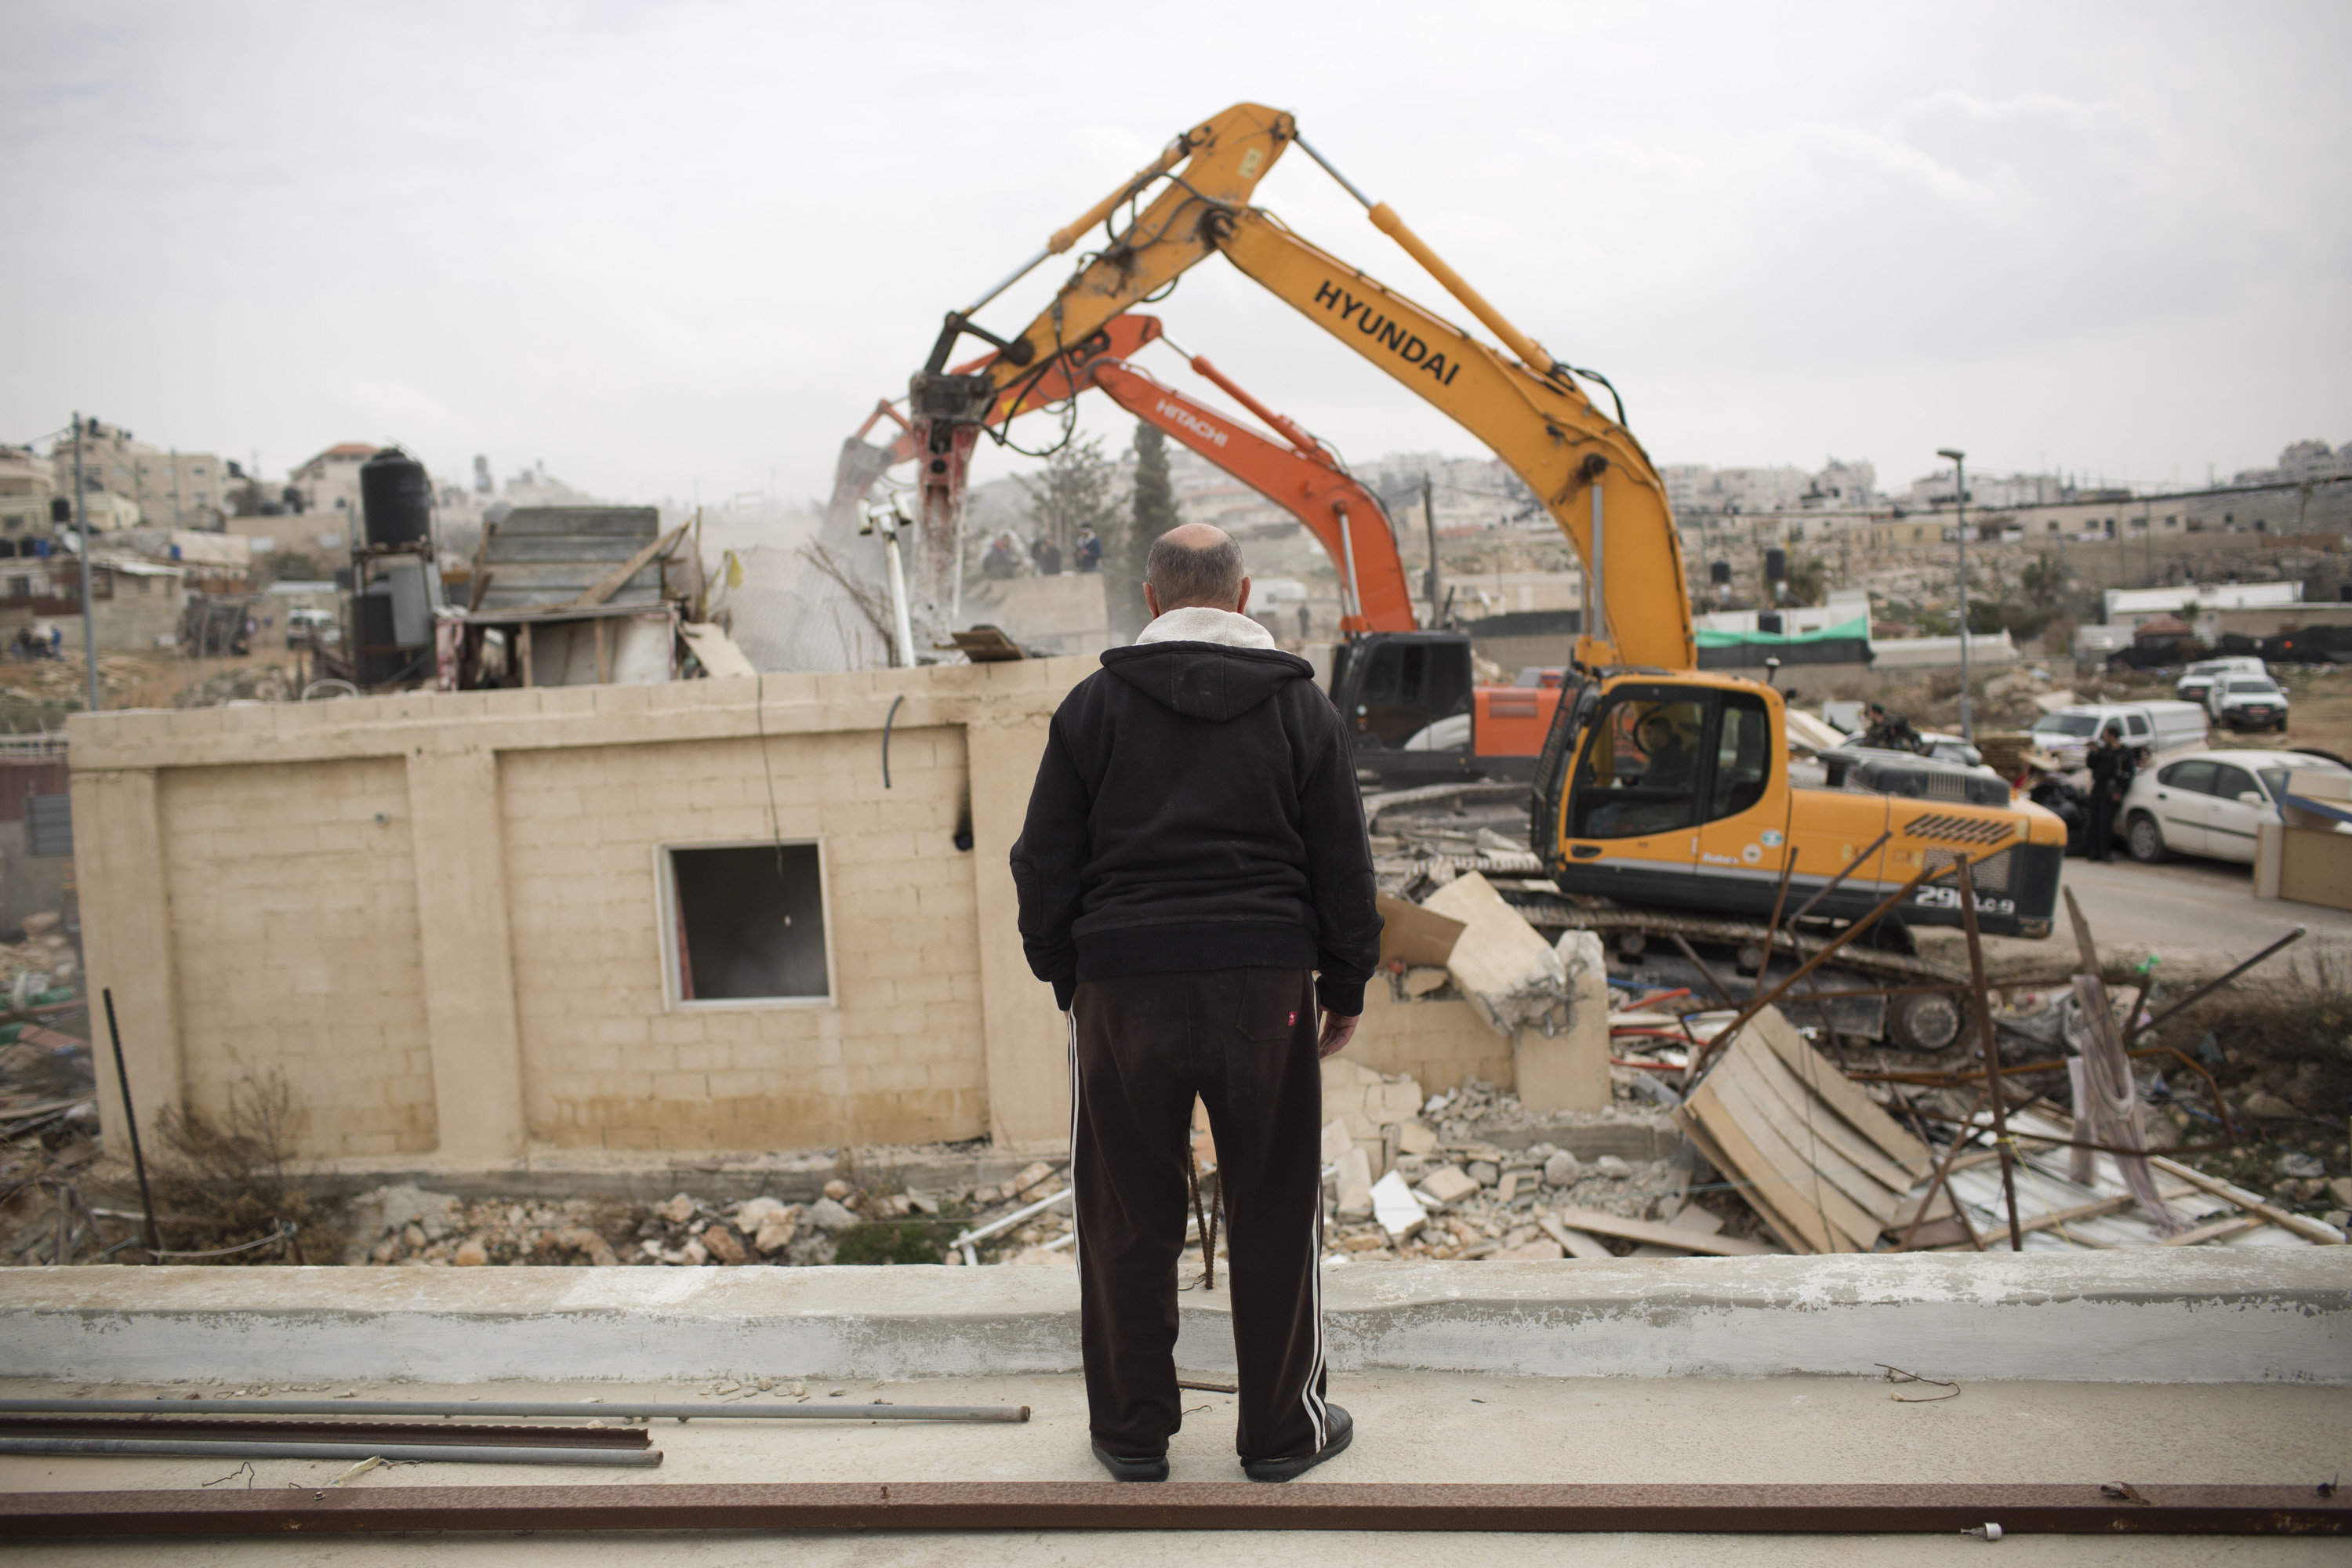 A member of the Adgluni family watching his house being demolished by Israeli authorities in Beit Hanina, East Jerusalem on January 27, 2014. The Israeli authorities claimed the house was built on lands that do not belong to the family. (Photo: Activestills)